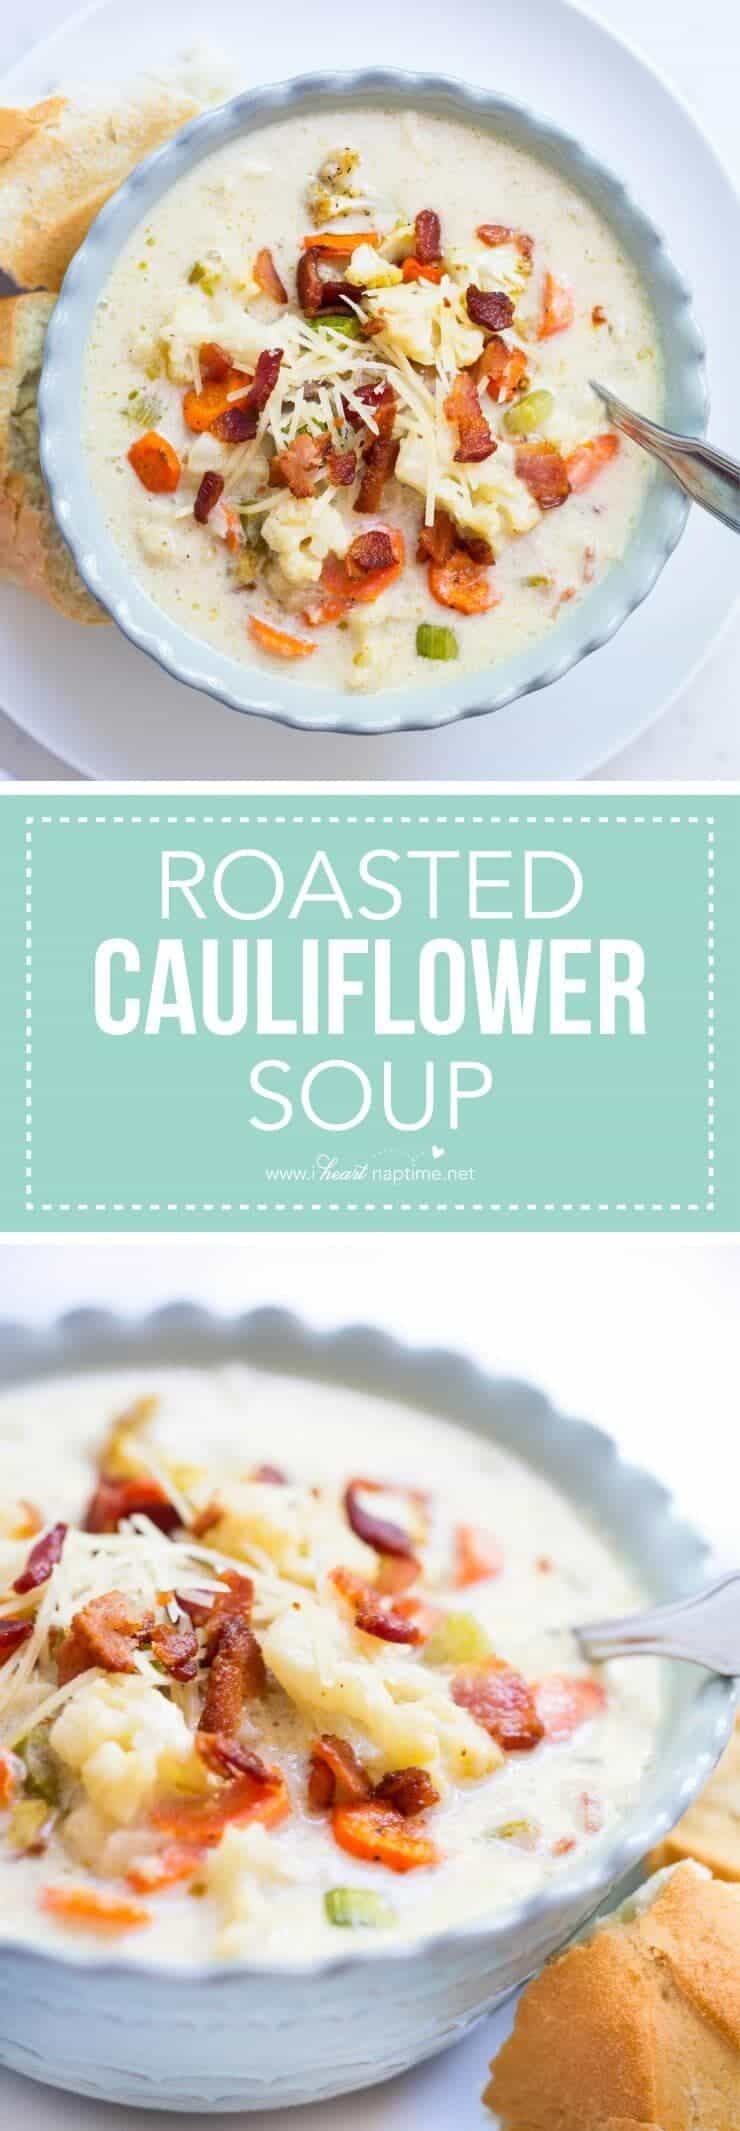 Roasted cauliflower soup recipe-a creamy soup filled with juicy roasted vegetables and crisp bacon.